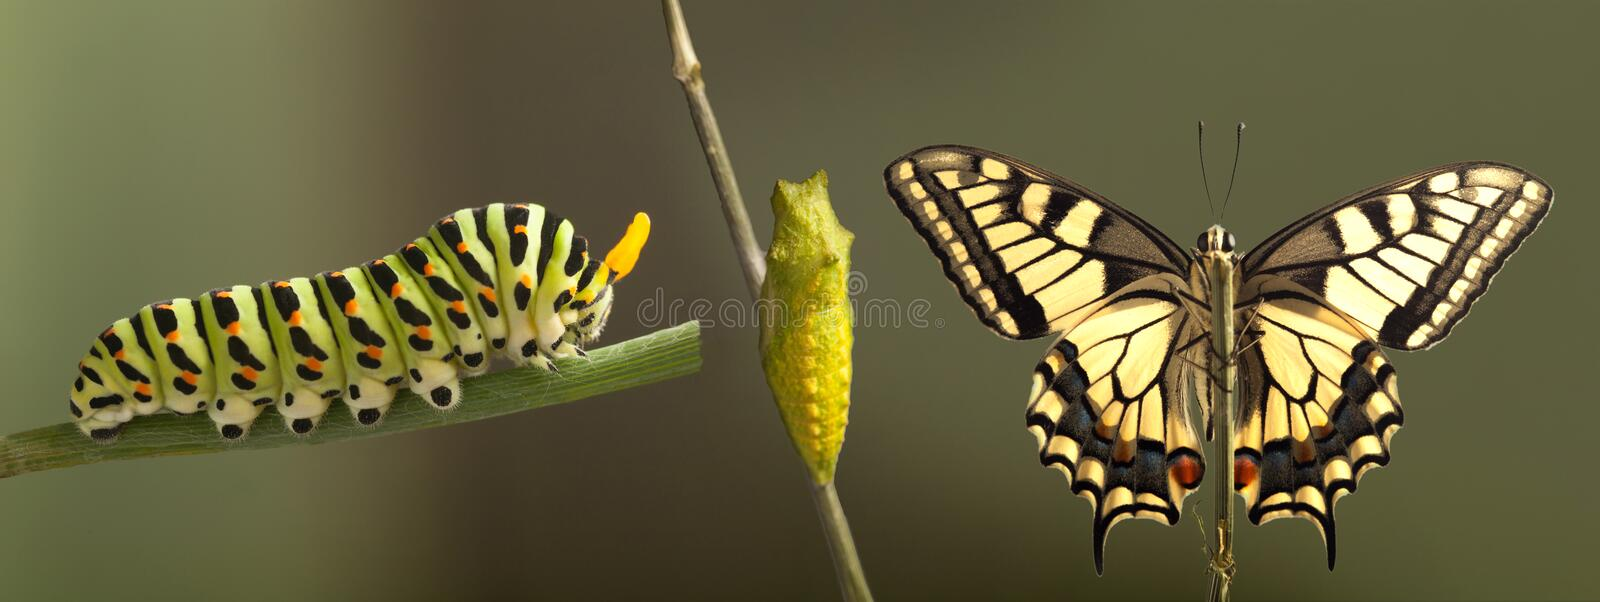 Transformação da borboleta comum do machaon que emerge do casulo fotos de stock royalty free